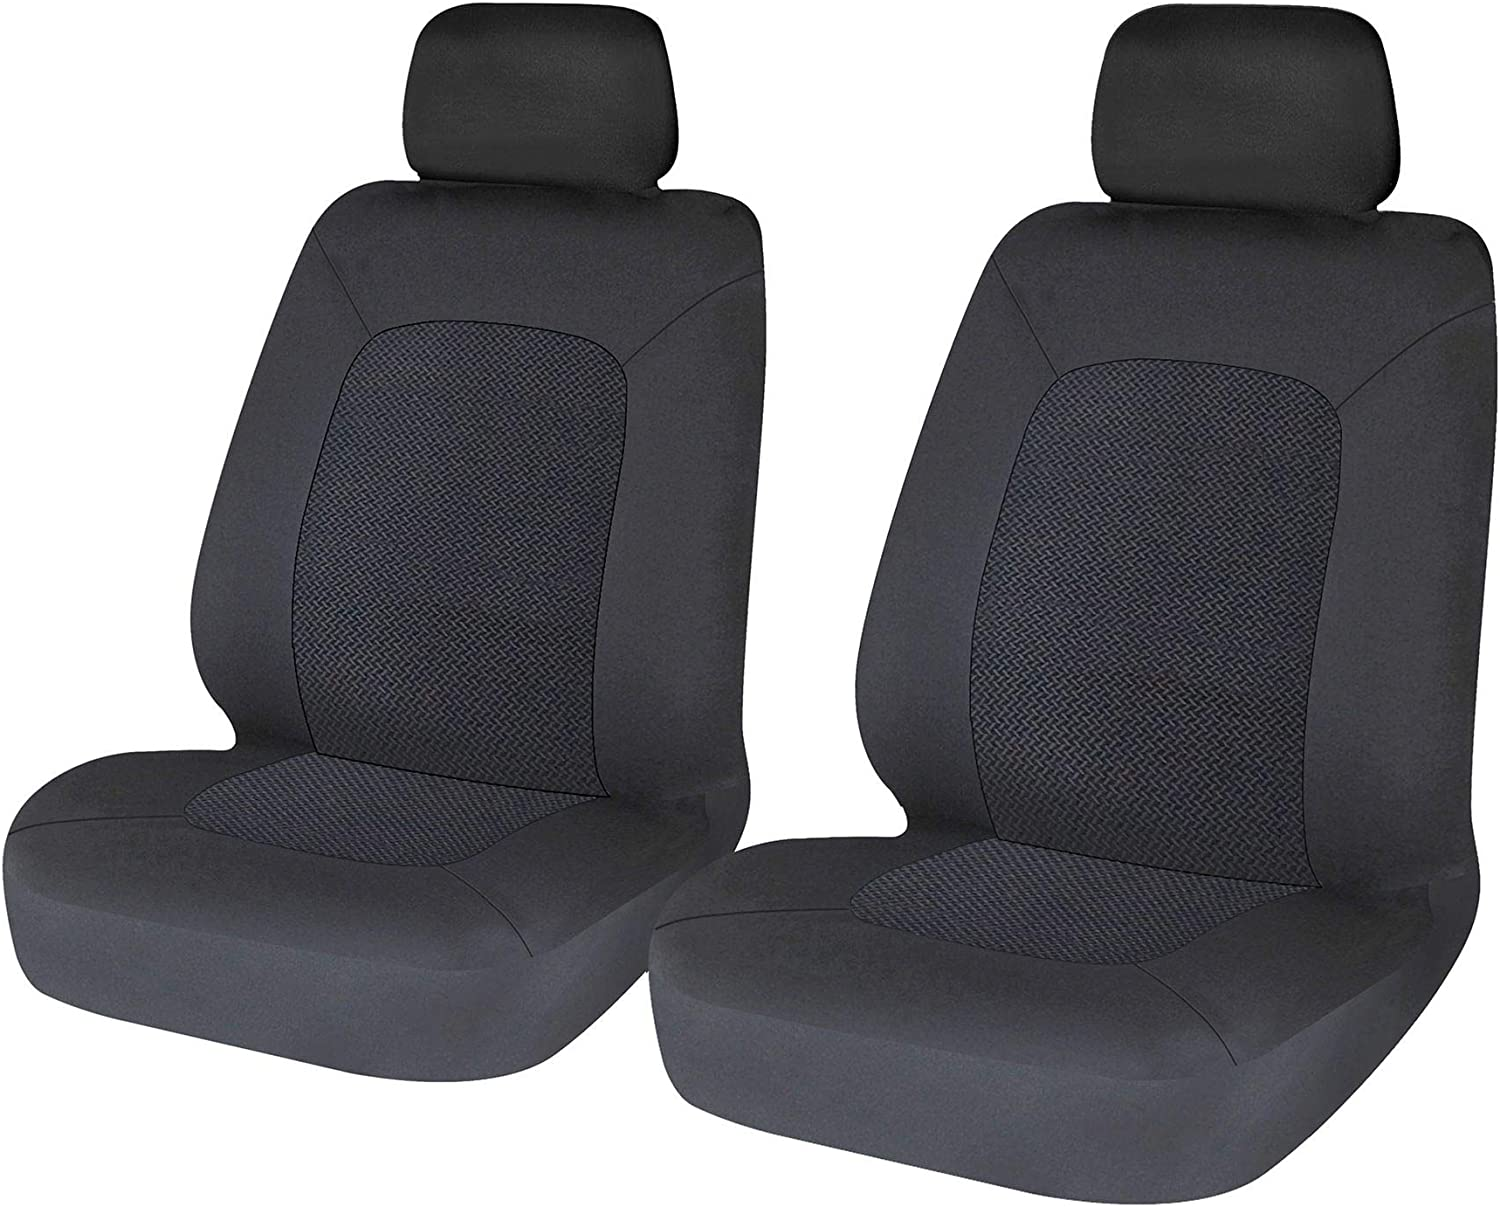 UKB4C Modern Black Front Set Car Seat Covers for Hyundai Tucson 04-09